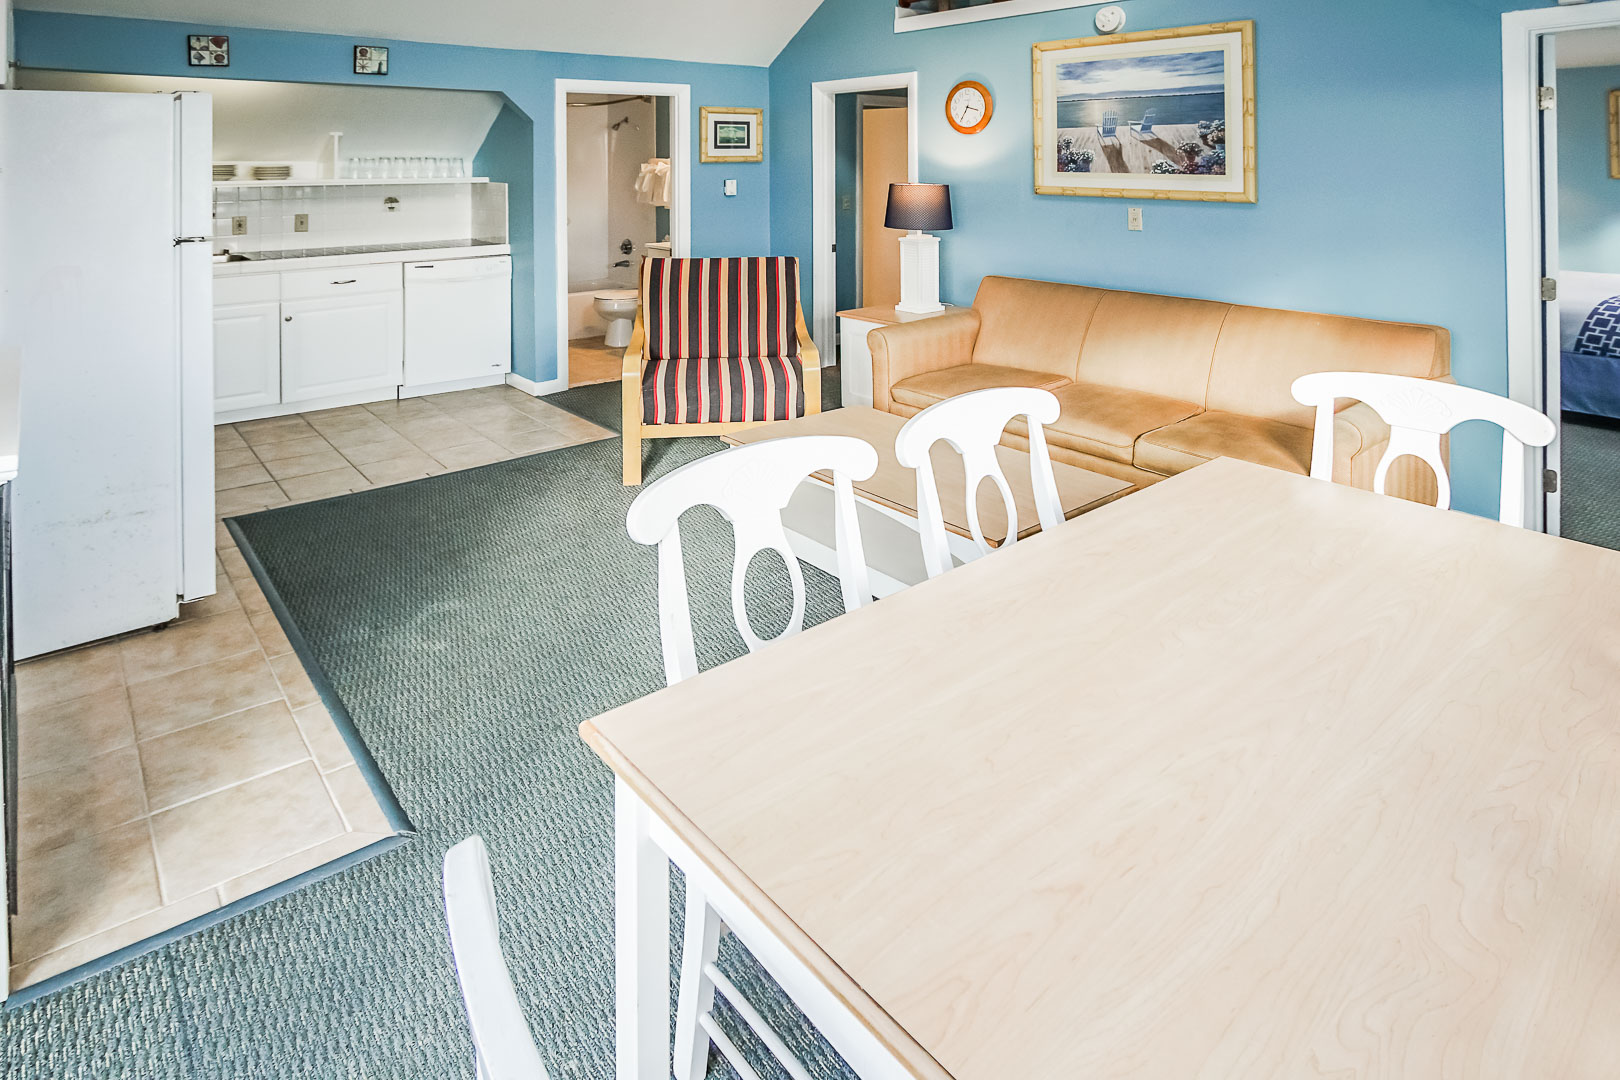 A cozy living and dining room area, equipped with a kitchenette at VRI's Seawinds II Resort in Massachusetts.